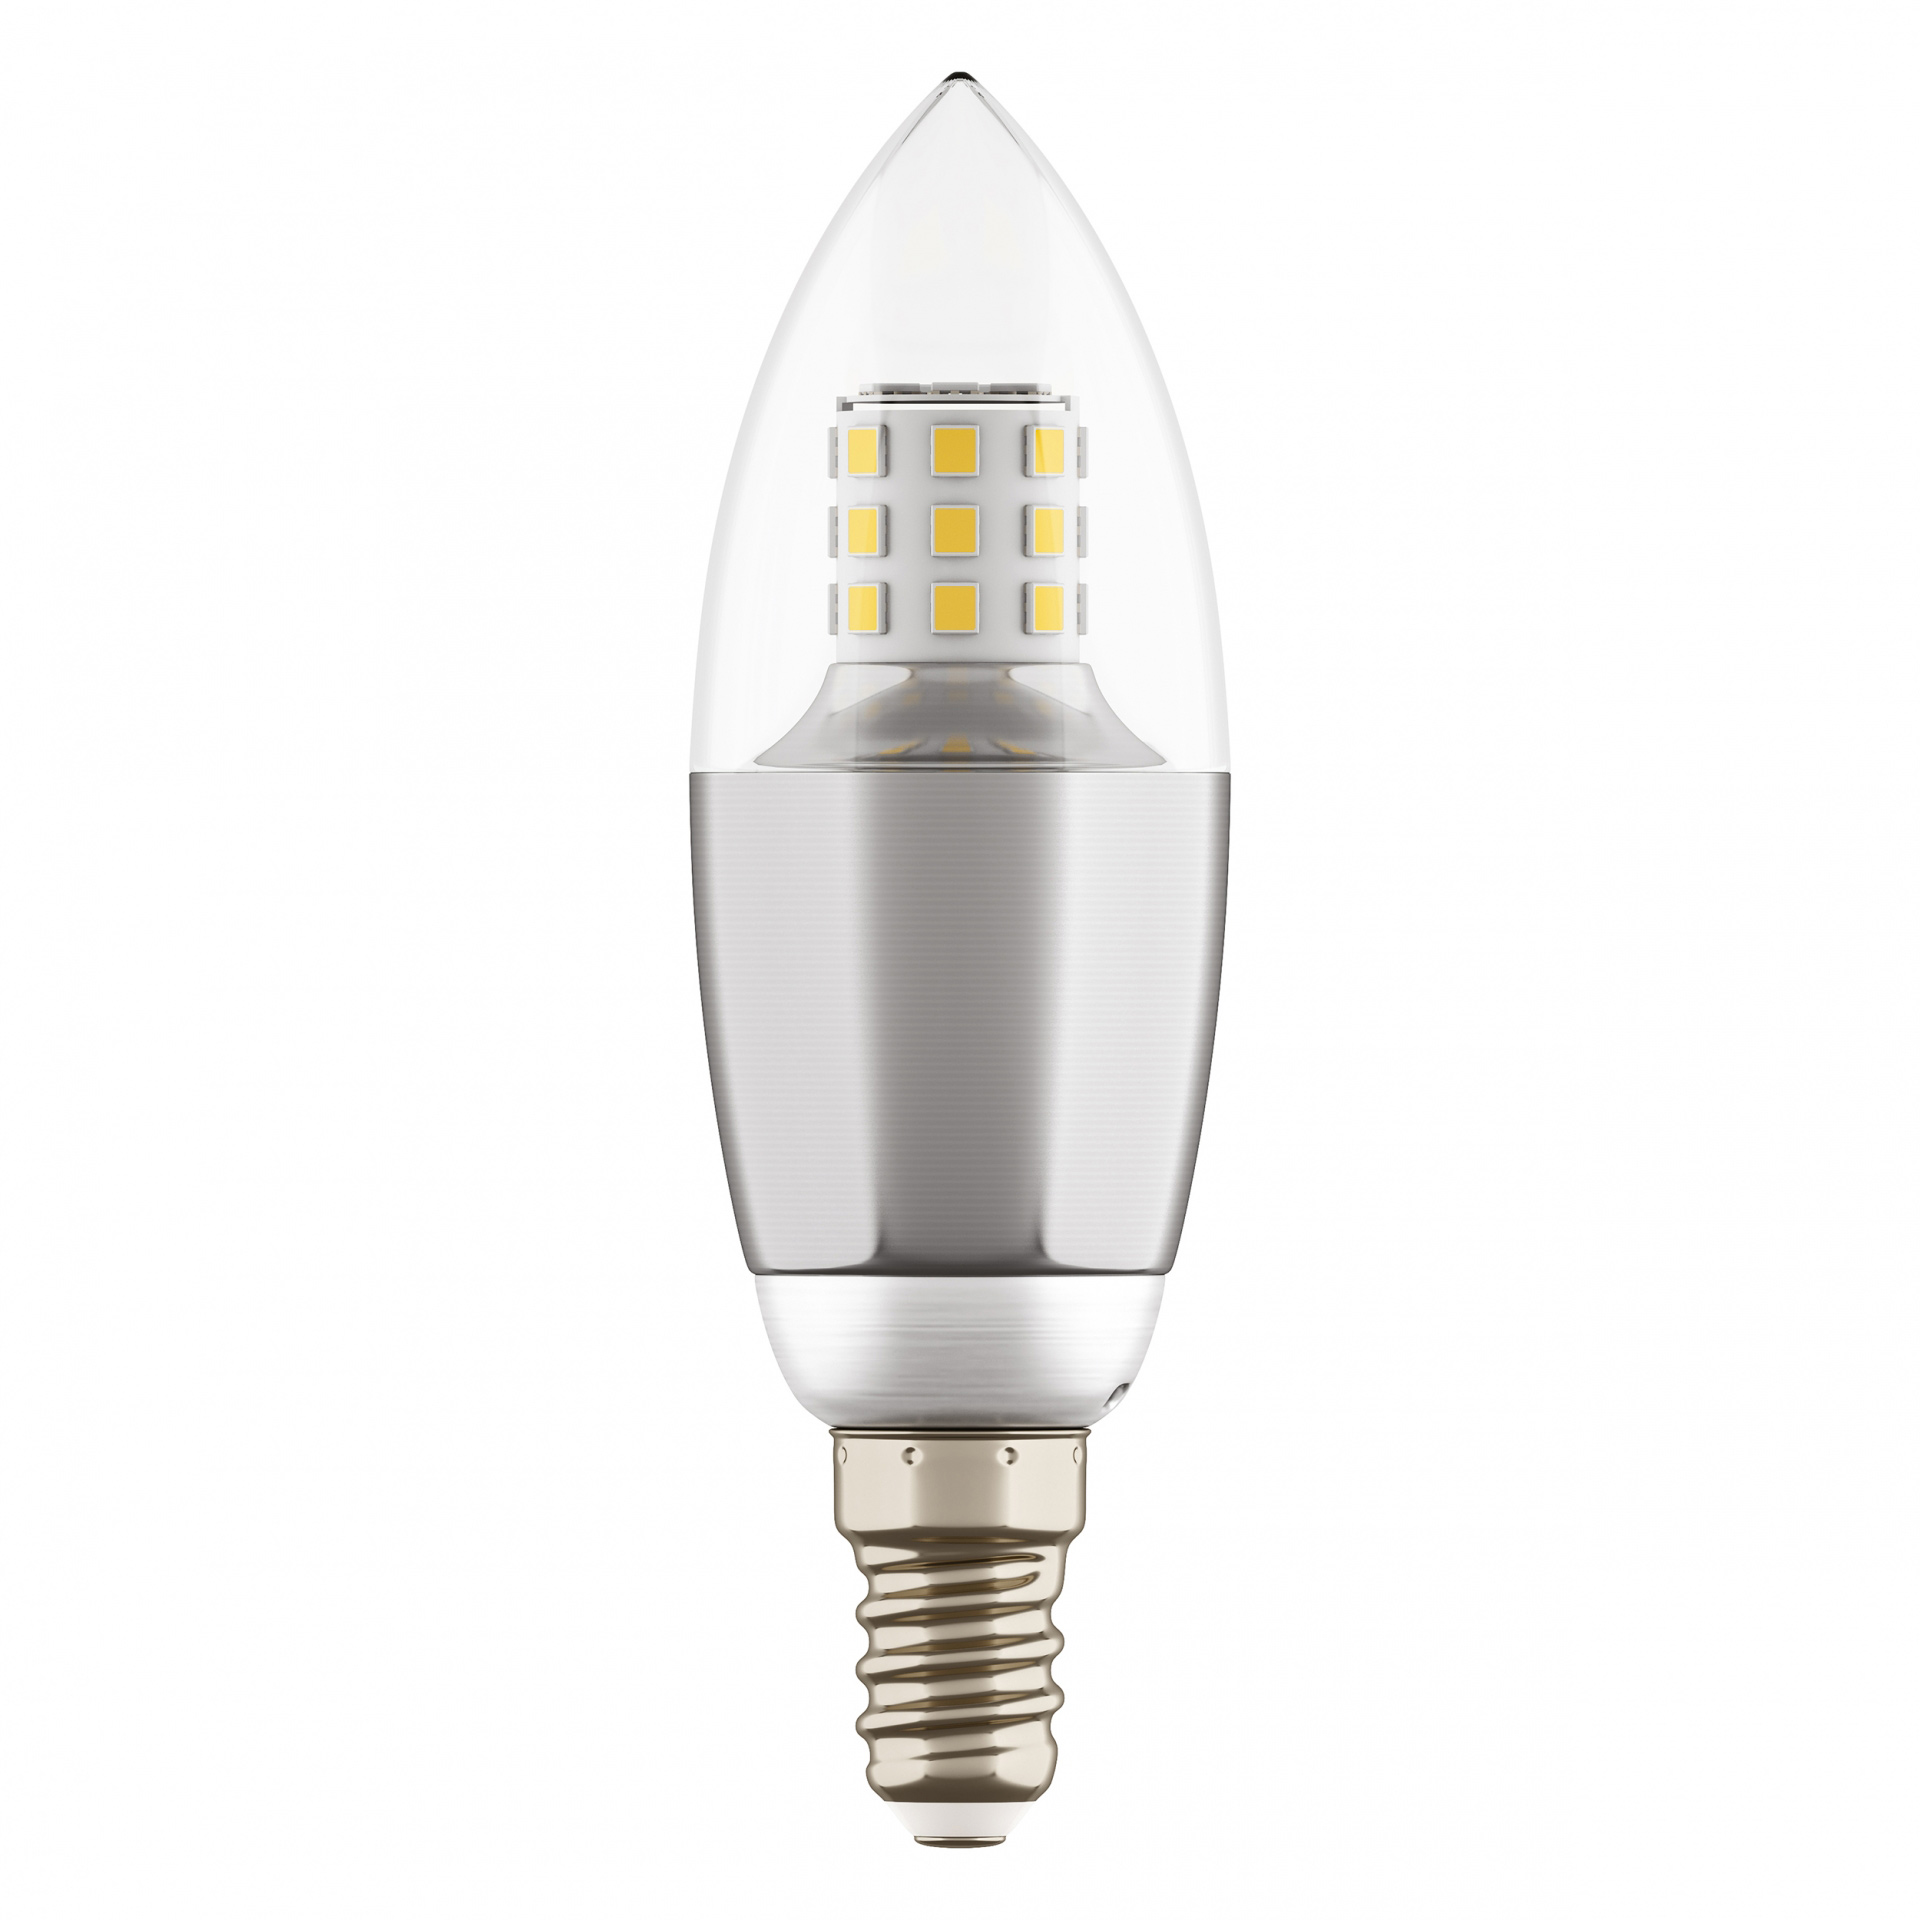 Лампа LED 220V C35 E14 7W=70W 460LM 60G CL/CH 3000K 20000H Lightstar 940542